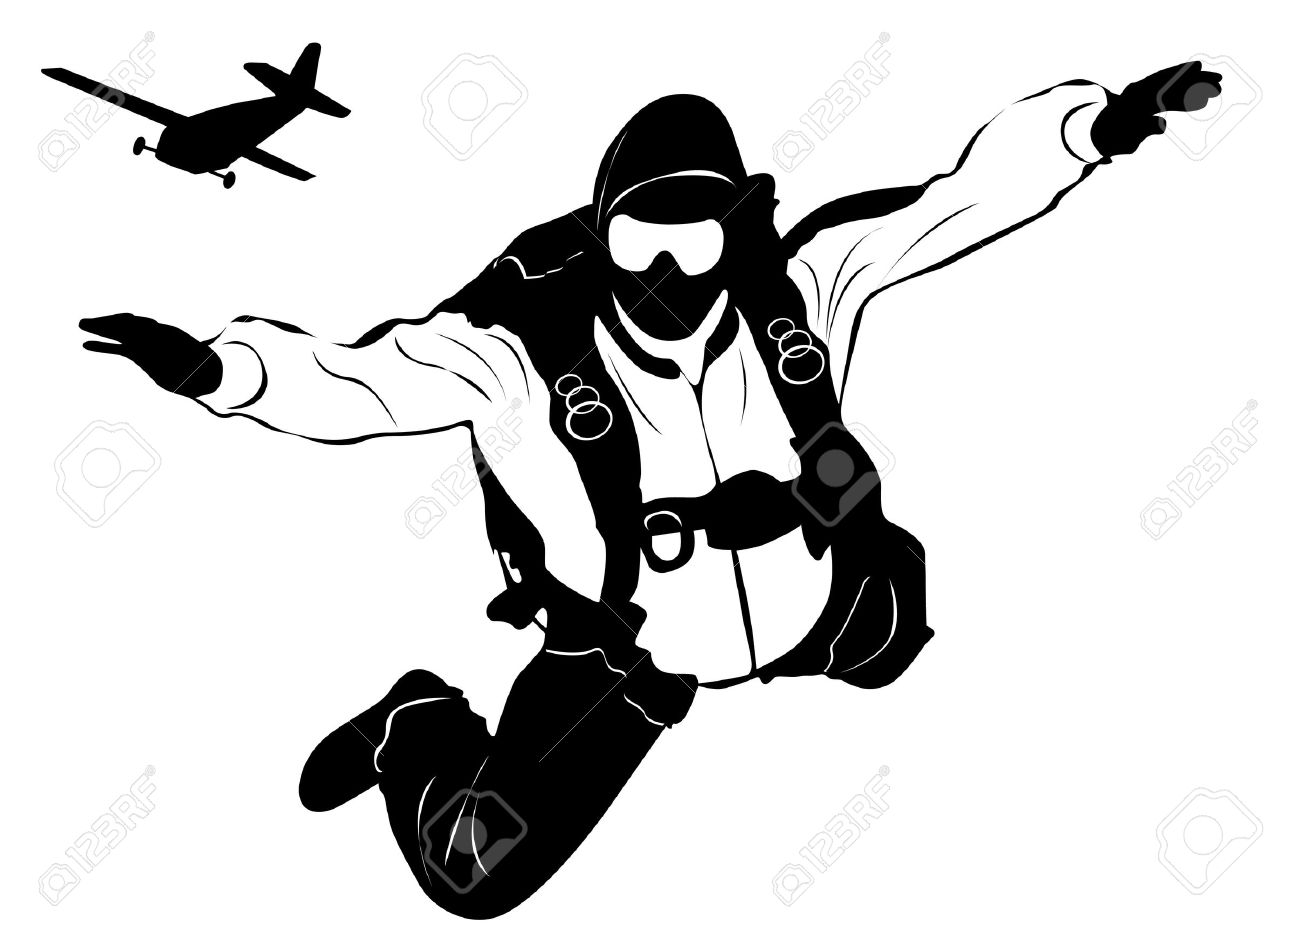 Skydiving clipart Skydiving Man Images a Plane